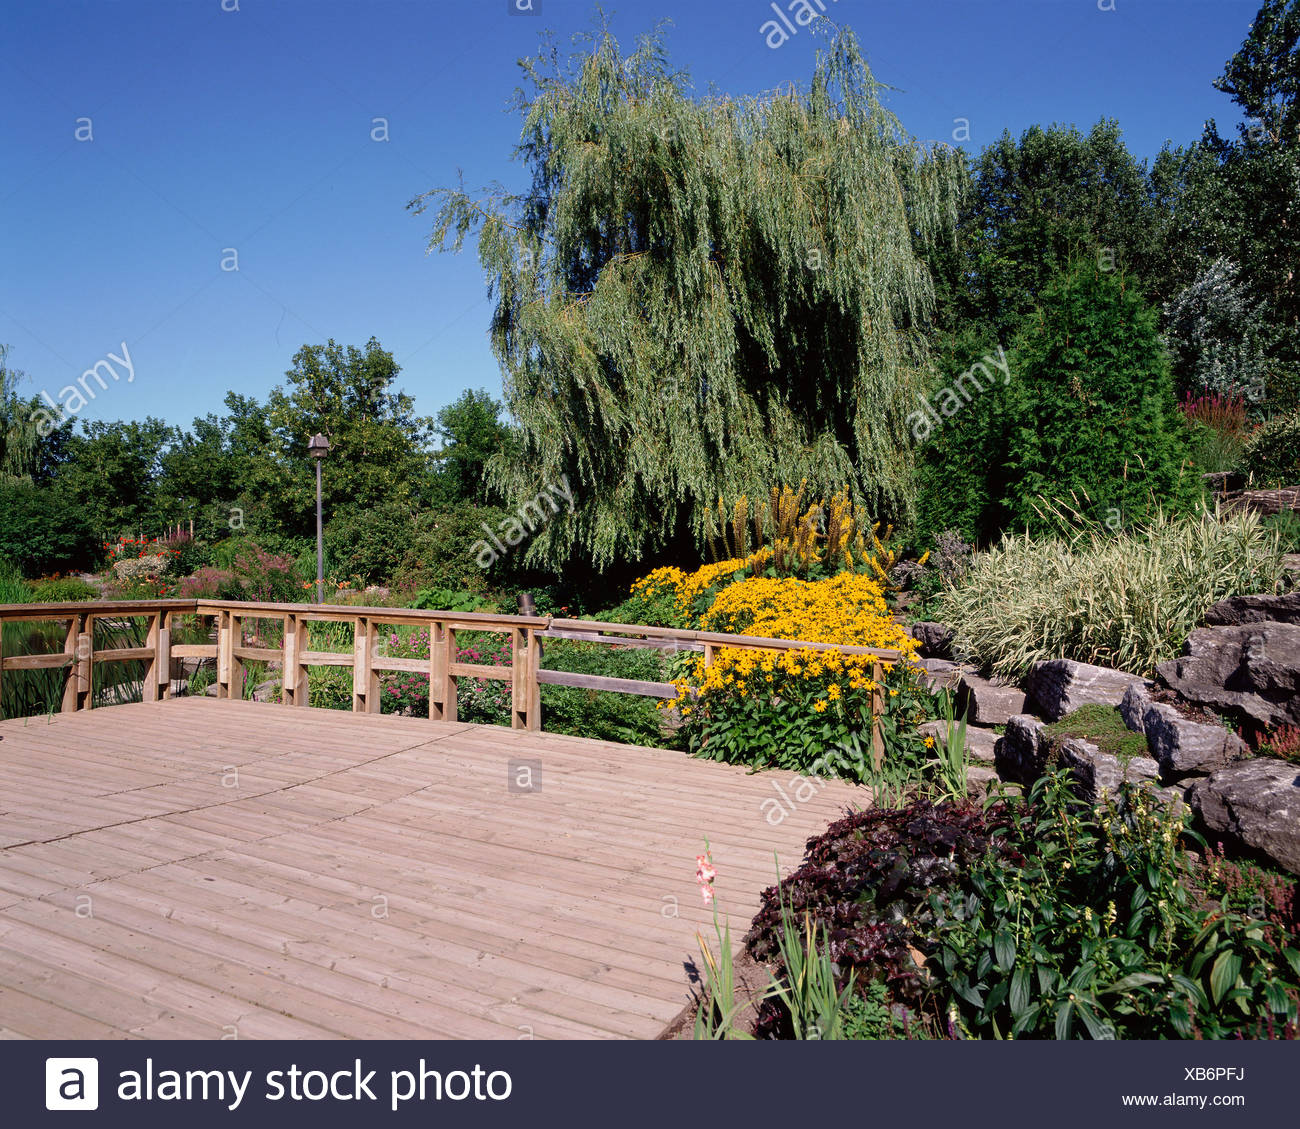 Deck and plants in garden - Stock Image